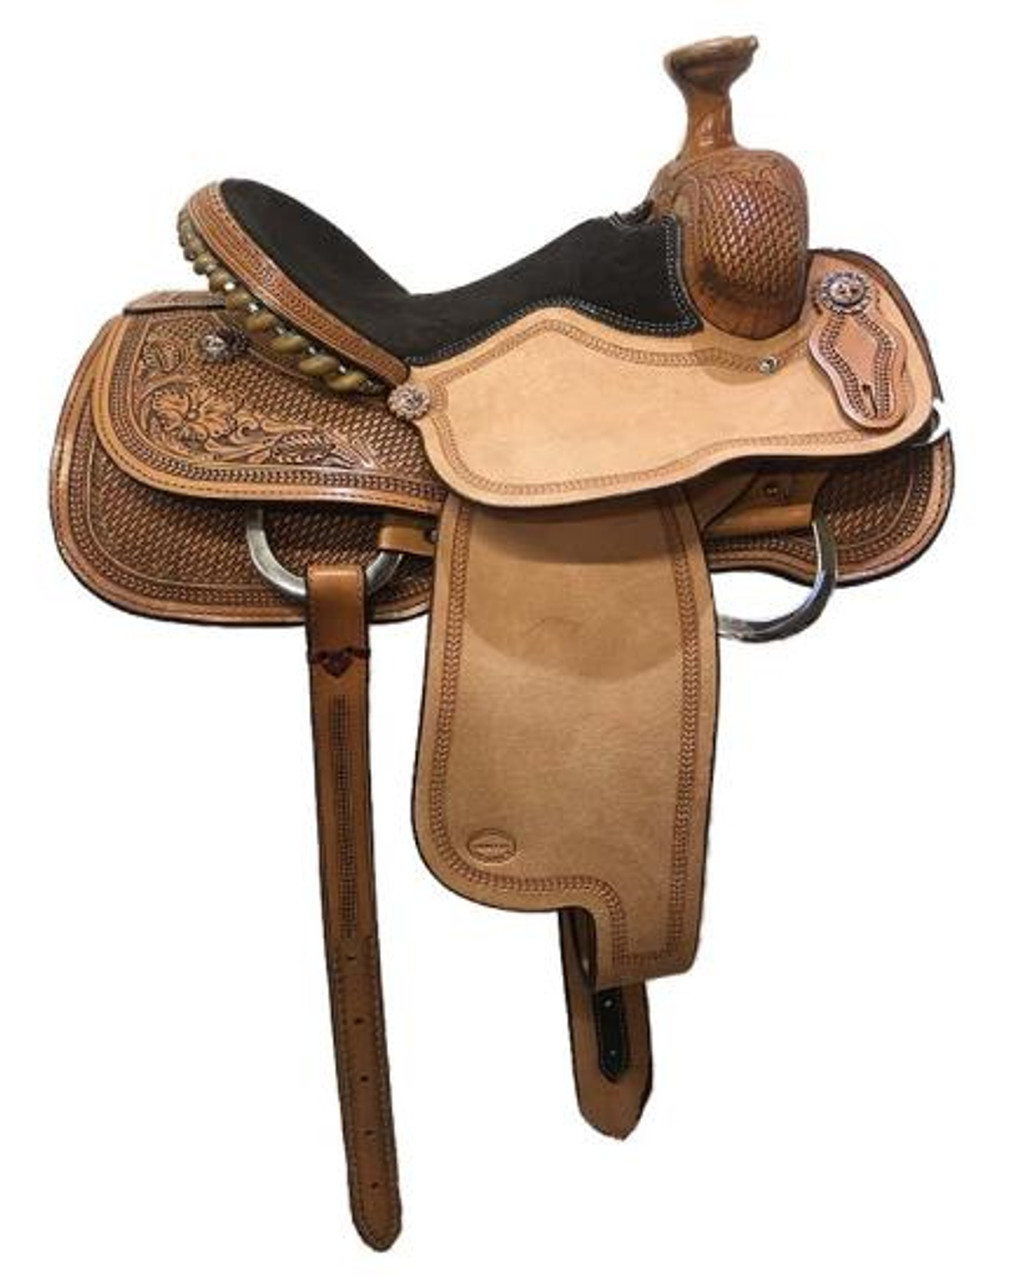 "Fort Worth Saddle Co  Arena Roper Saddle with 14"" seat, 7.5"" gullet.  Made in USA.   Heavily tooled skirts, fork, cantle. Padded seat, rough-out jockeys and fenders with border tooling. Cheyenne roll cantle with metal wrapped rawhide."